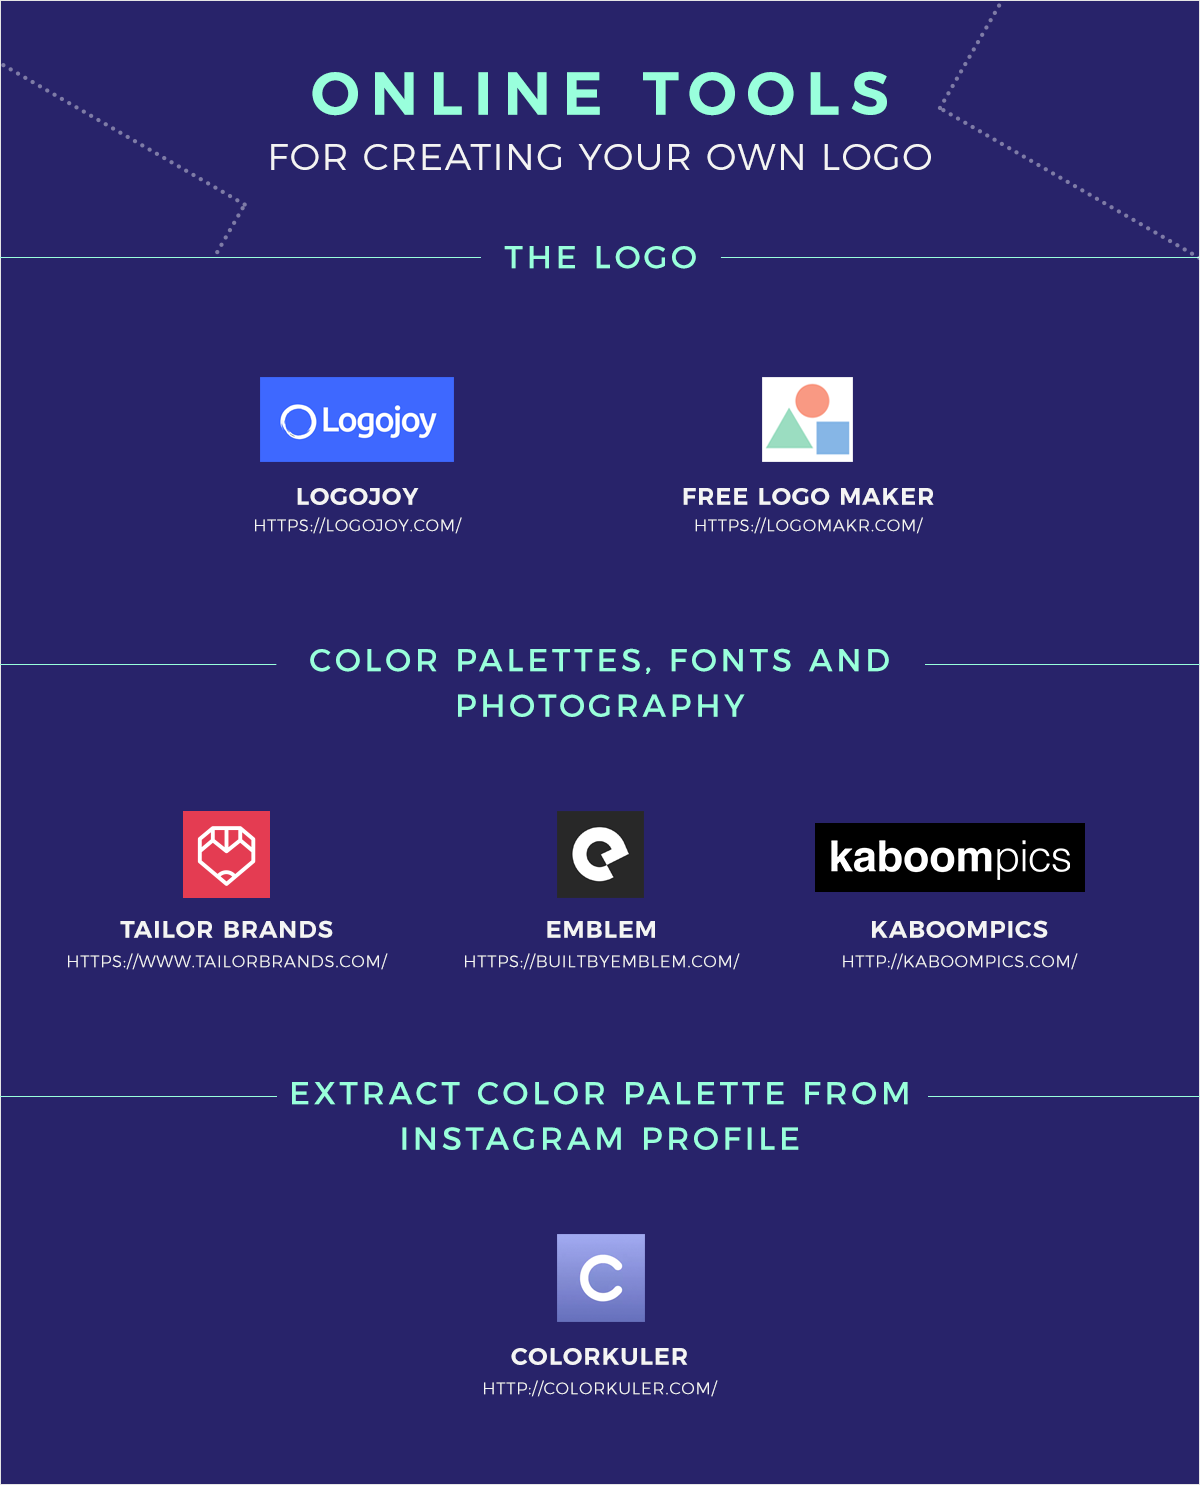 Online-Tools-for-Creating-Your-Own-Logo brand identity